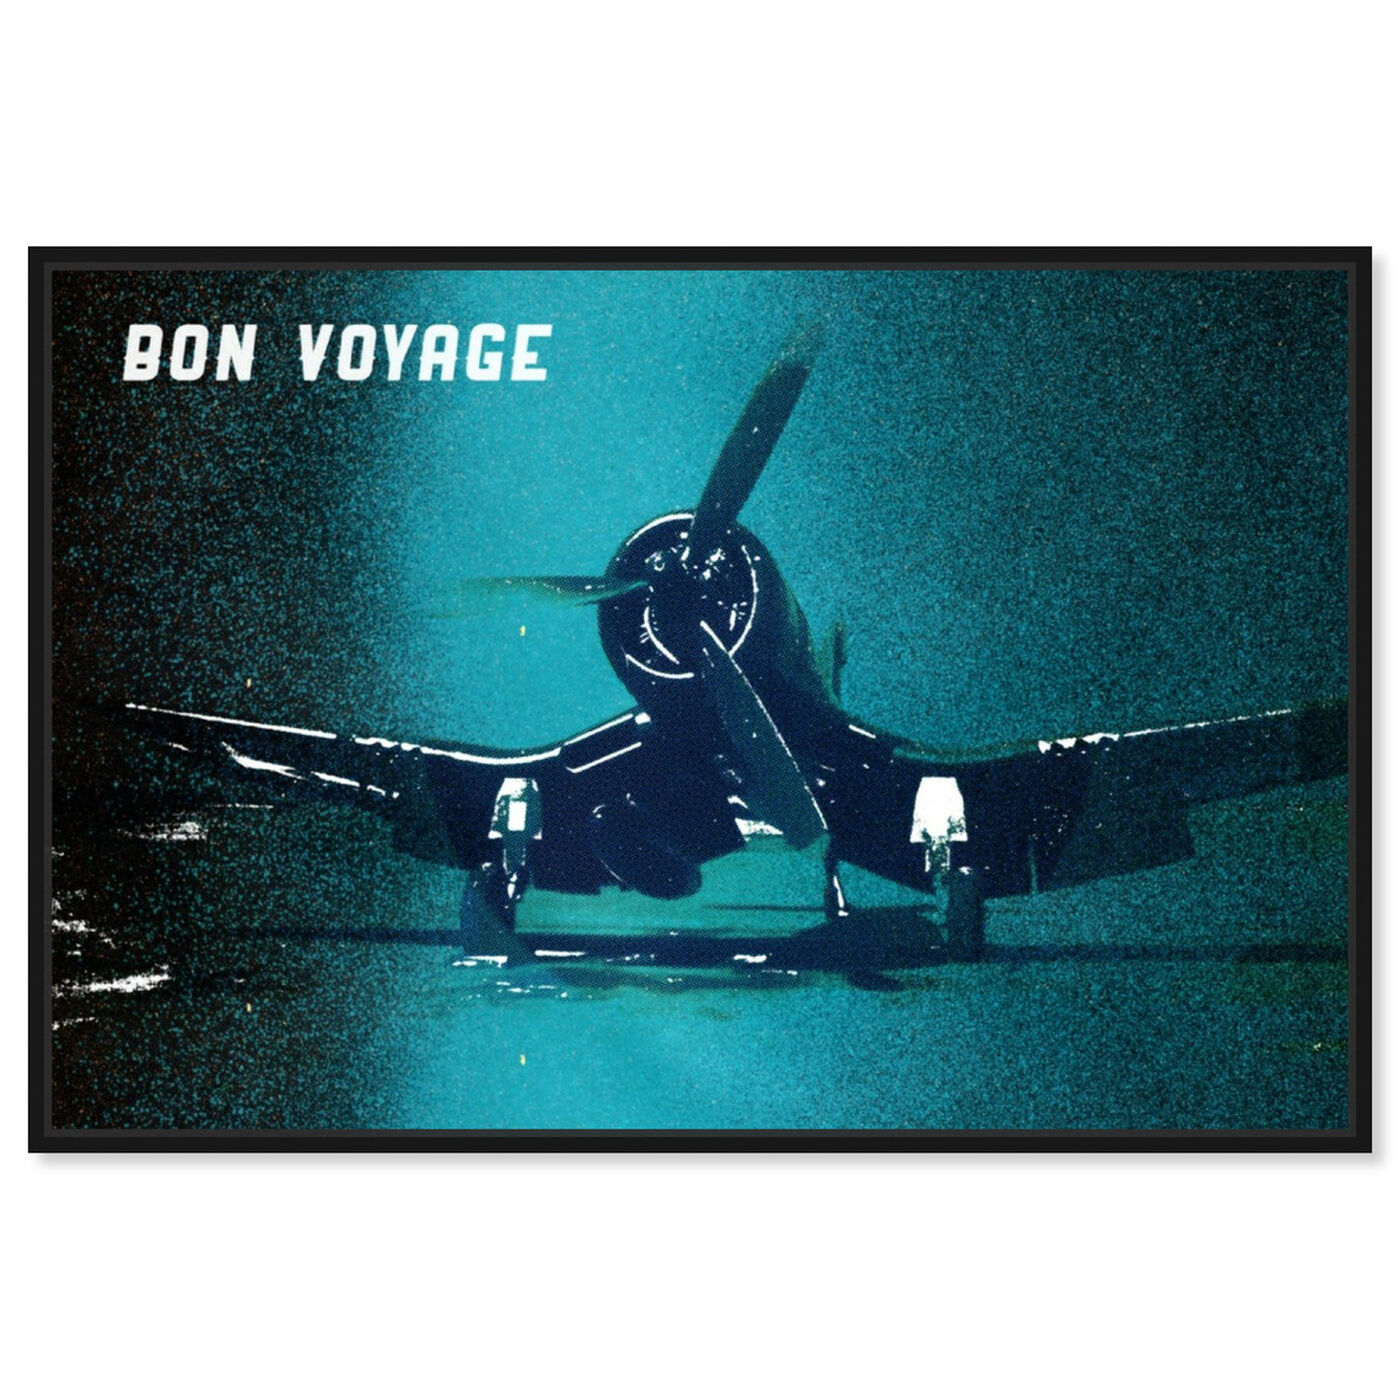 Front view of Bon Voyage featuring transportation and airplanes art.